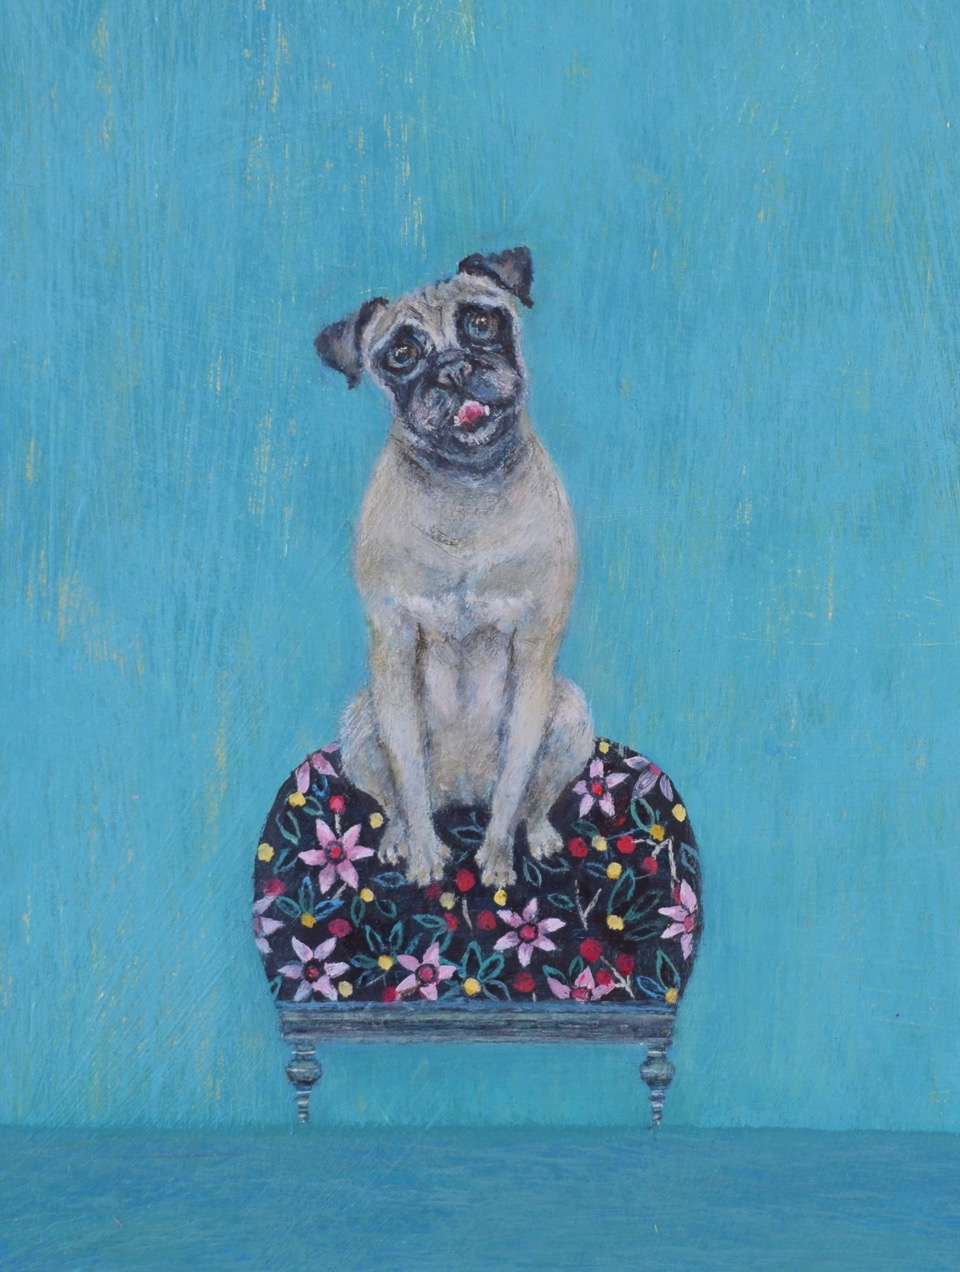 Pug  13 x 18 cm Acrylic on board £275